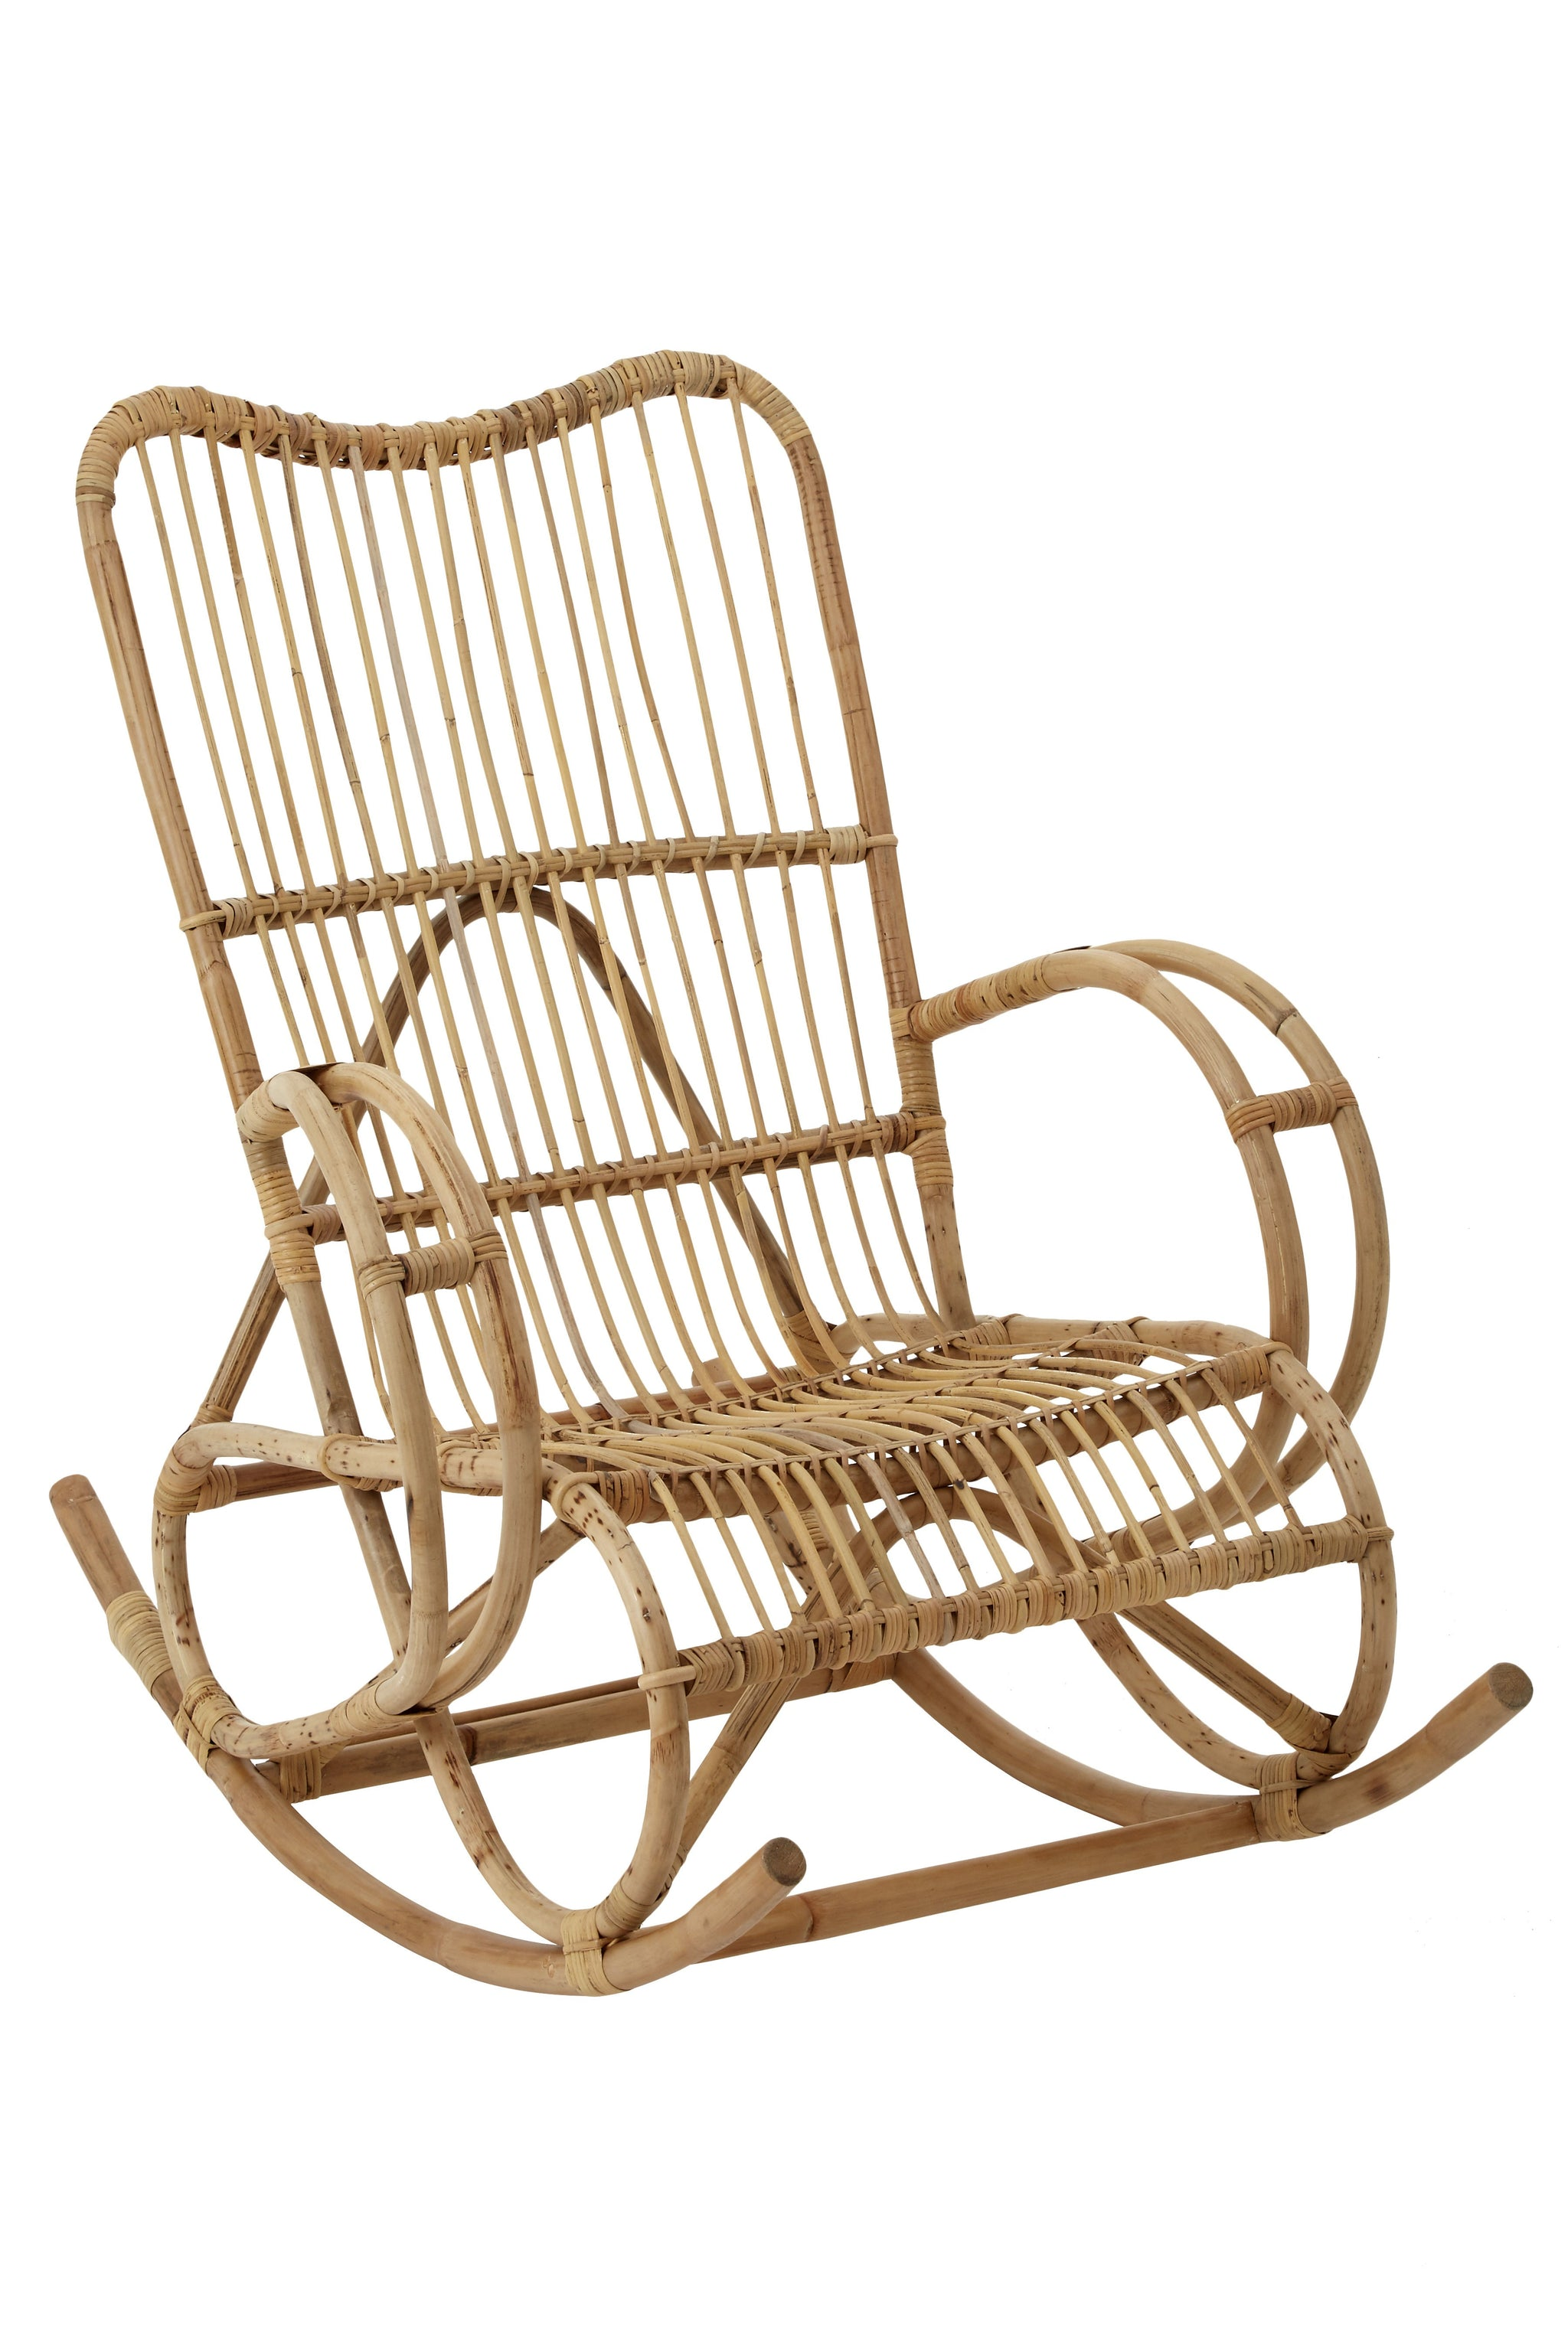 Woodstock Rocker Rattan Chair